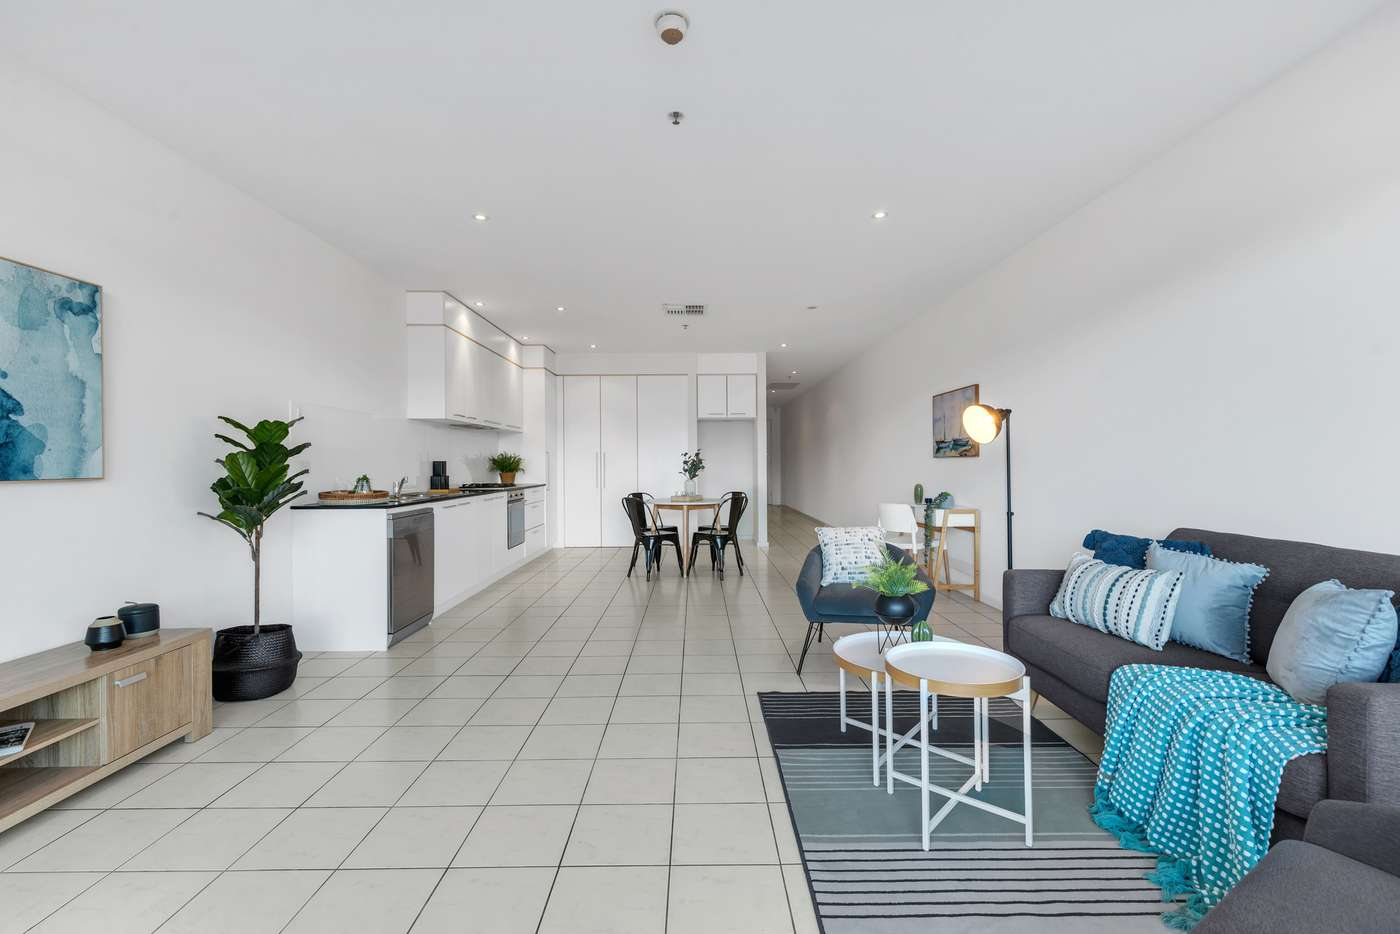 Fifth view of Homely apartment listing, 3/100 Rose Terrace, Wayville SA 5034